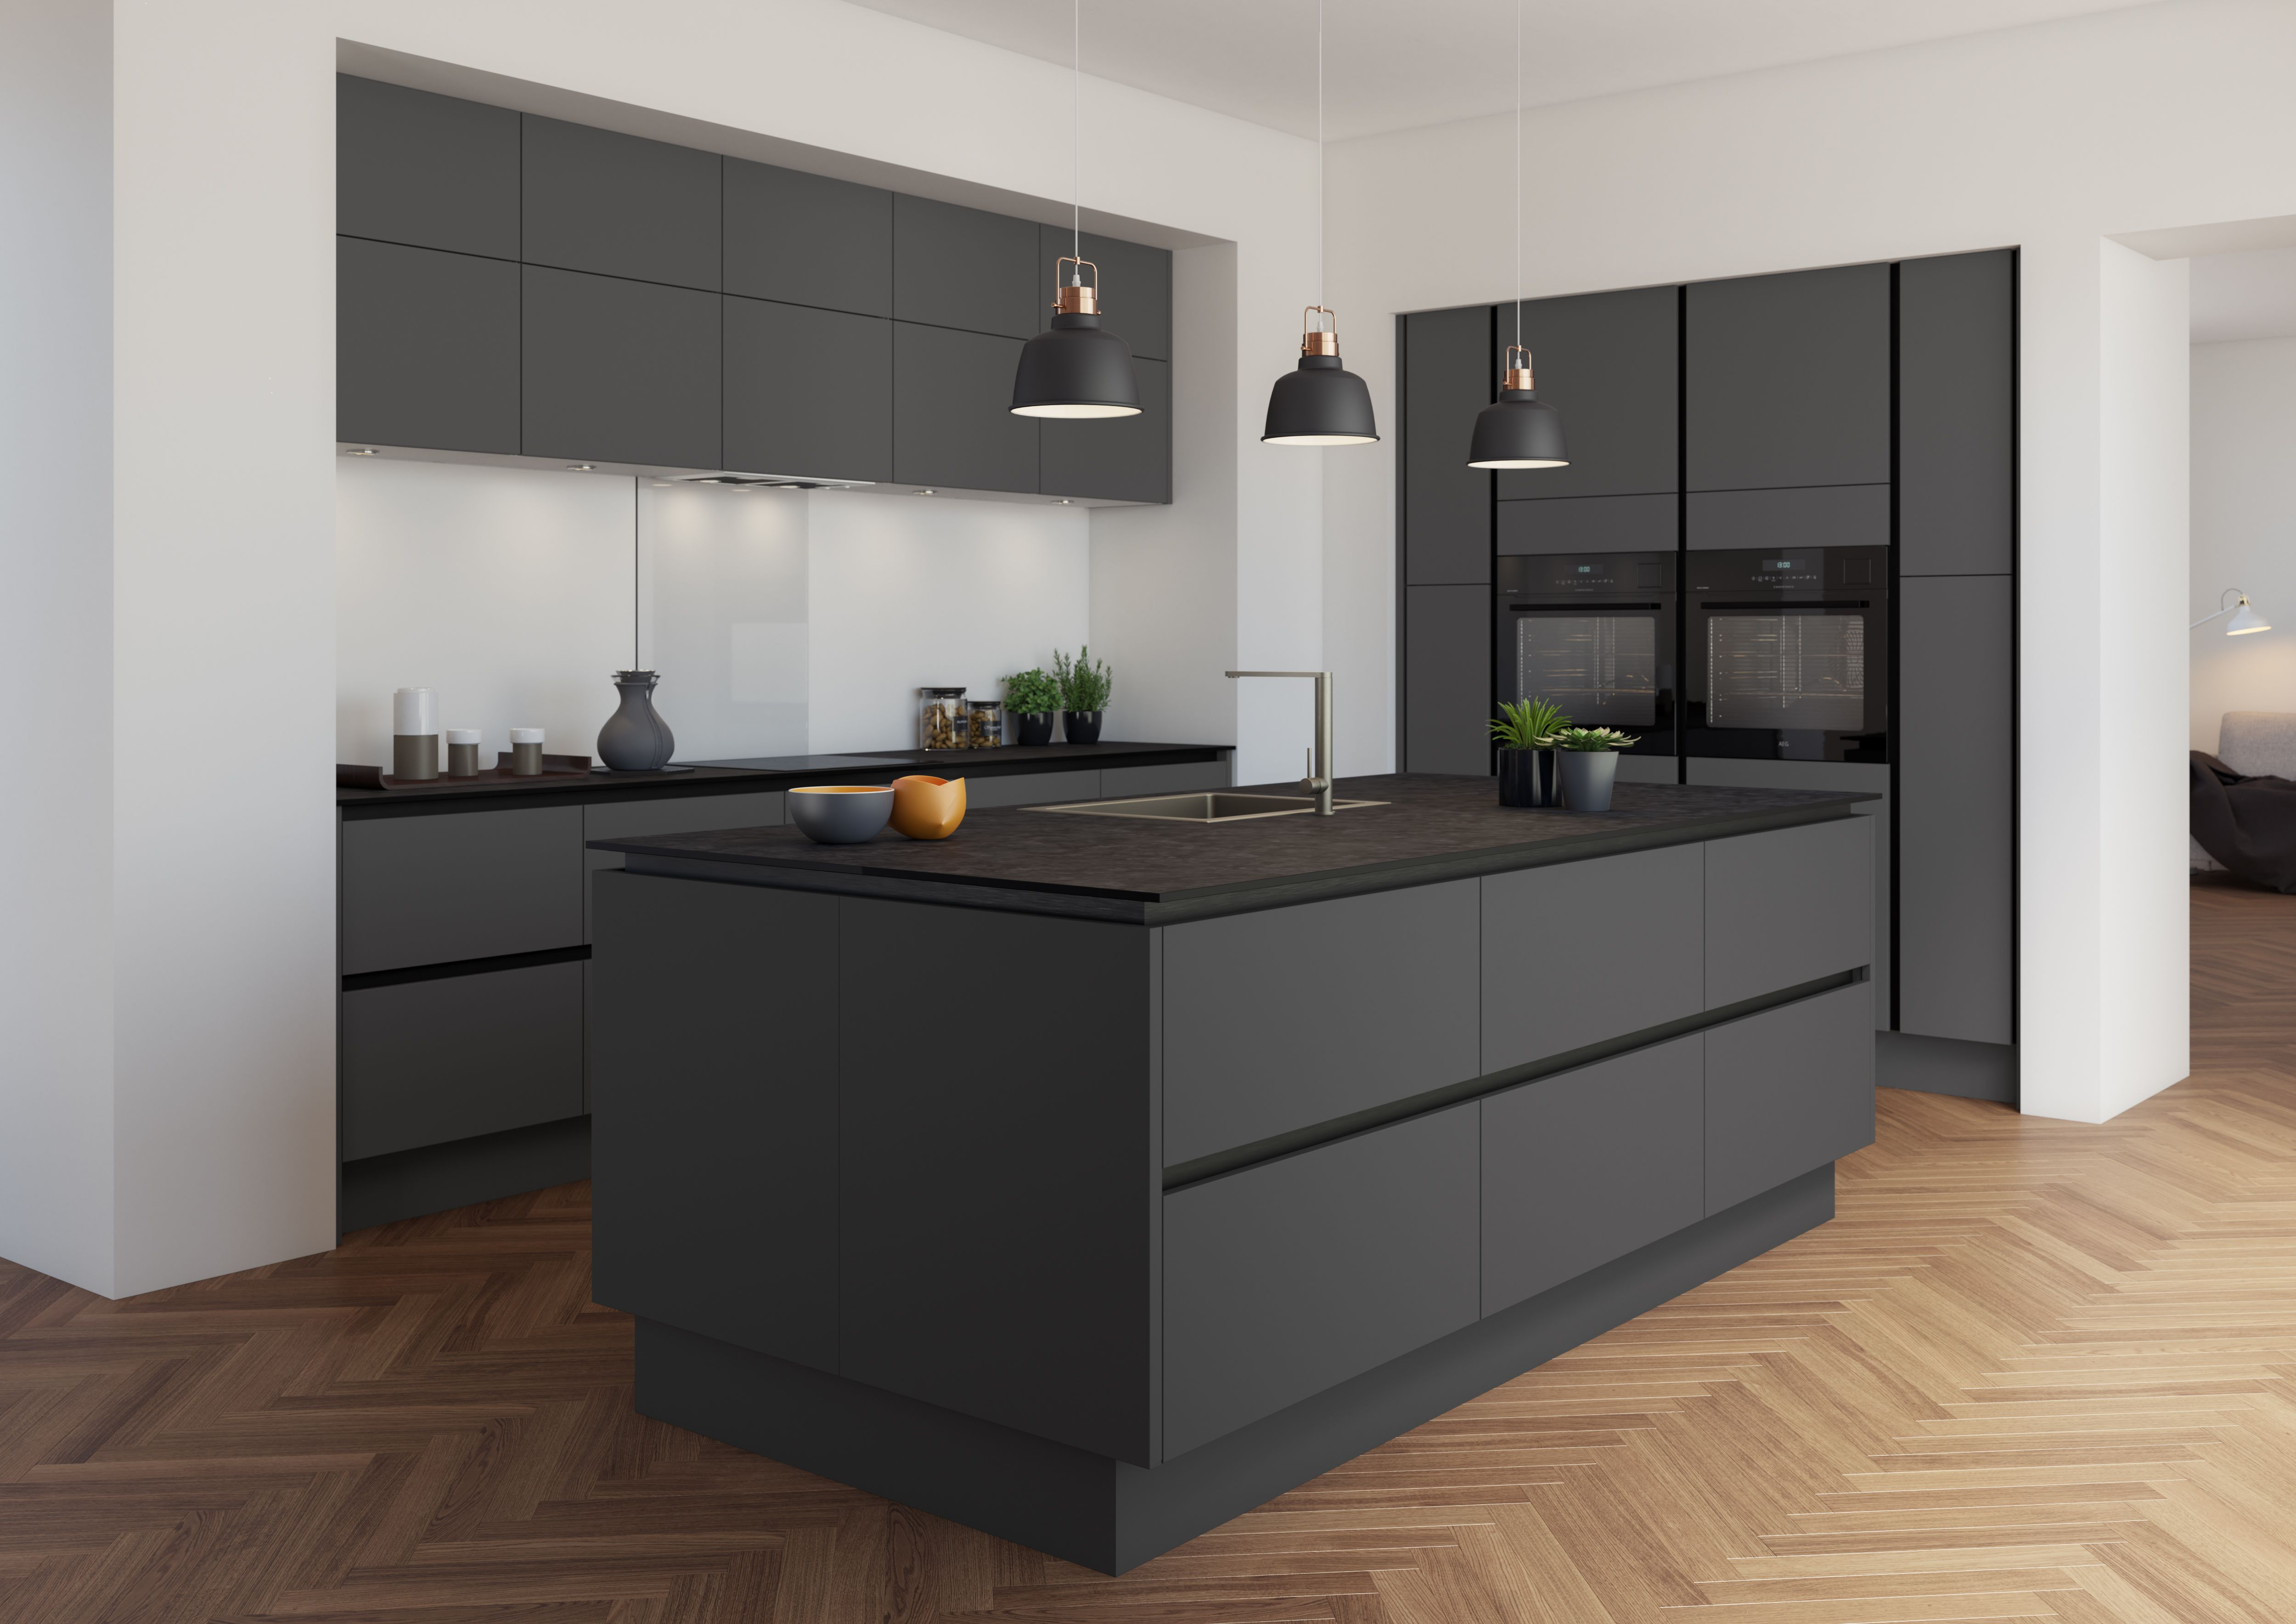 Our fifth and final ice cream flavour is Charcoal, inspired by our Charcoal Magnet Create kitchen shade. 🙌 With hints of charcoal, you'll enjoy every delicious smokey mouthful.  IceCream  MagnetCreate  CreateRange  KitchenRange  KitchenIdeas  KitchenInspo  DreamKitchen  QualityKitchen  Design  InteriorDesign  KitchenShade  Kitchen